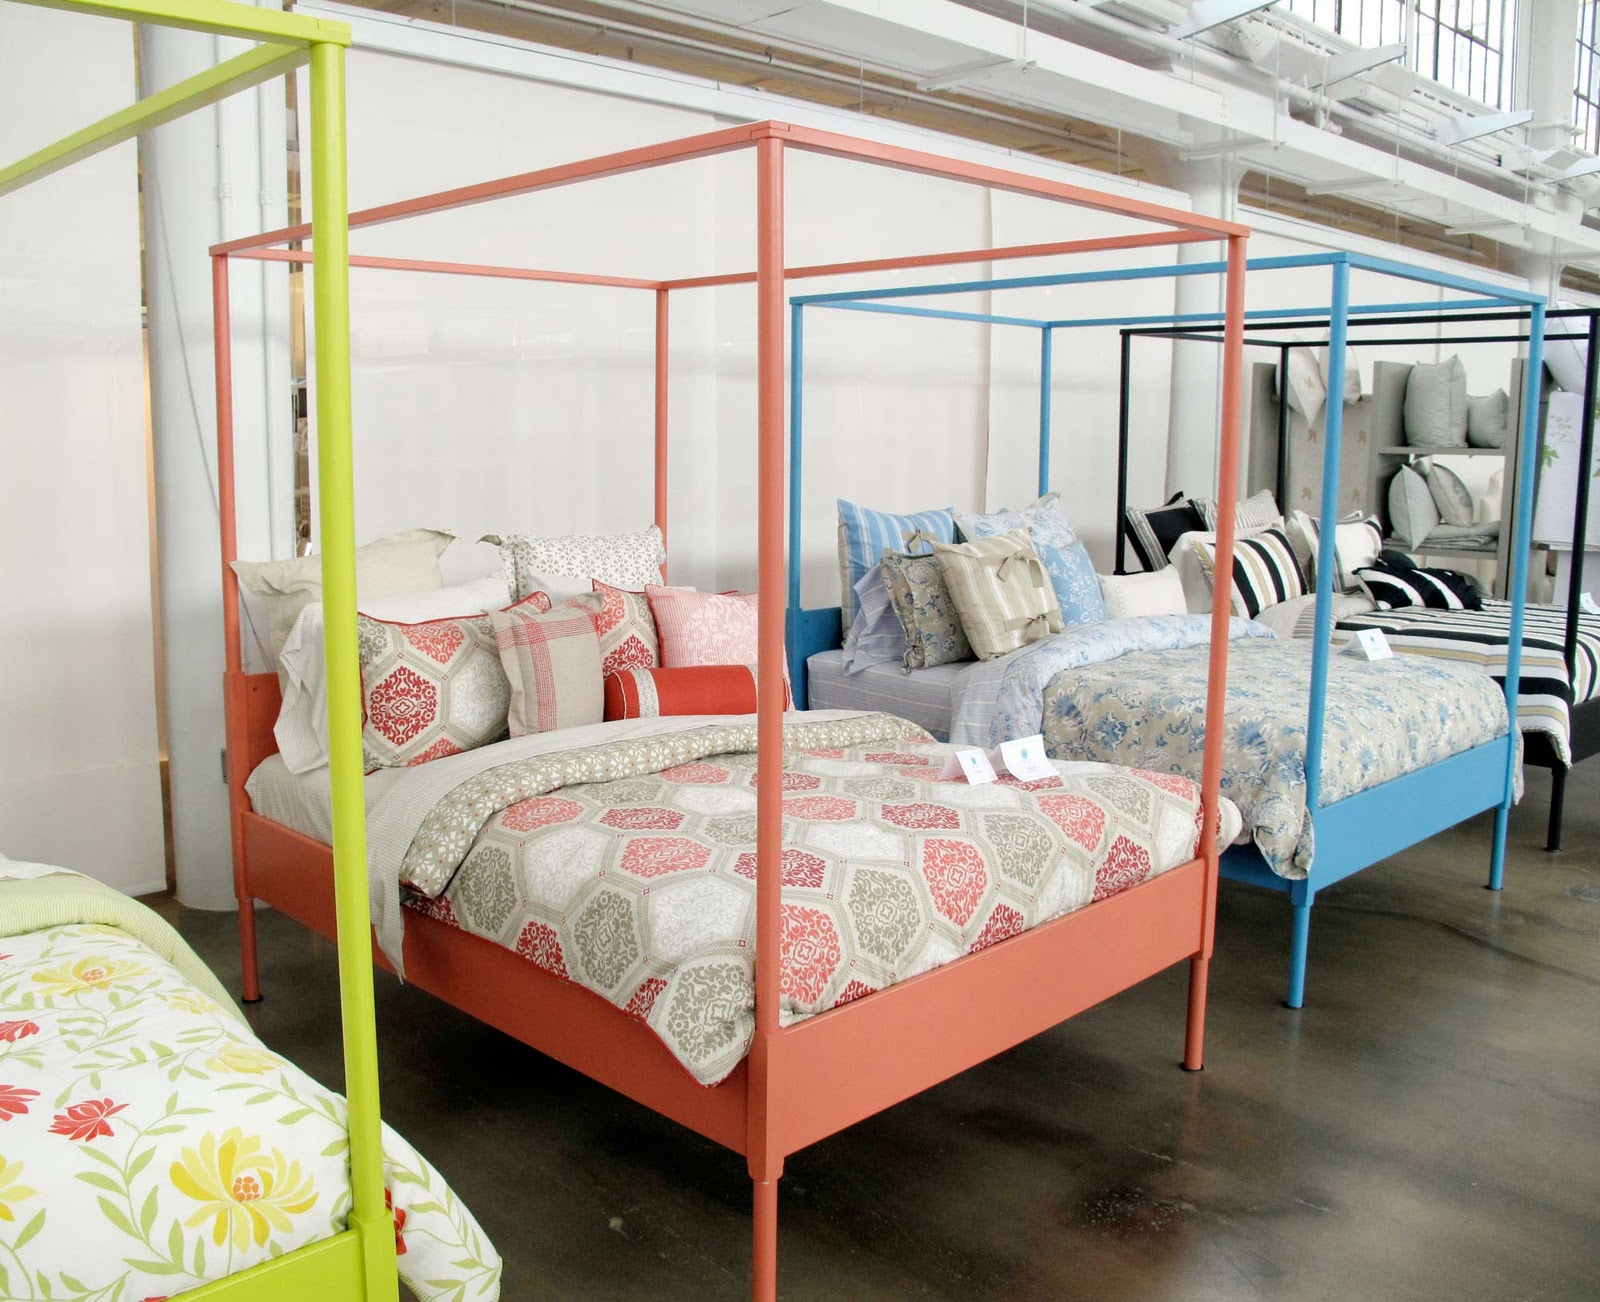 How To Build A Four Poster Bed Ikea Four Poster Bed Capriciously Inspired